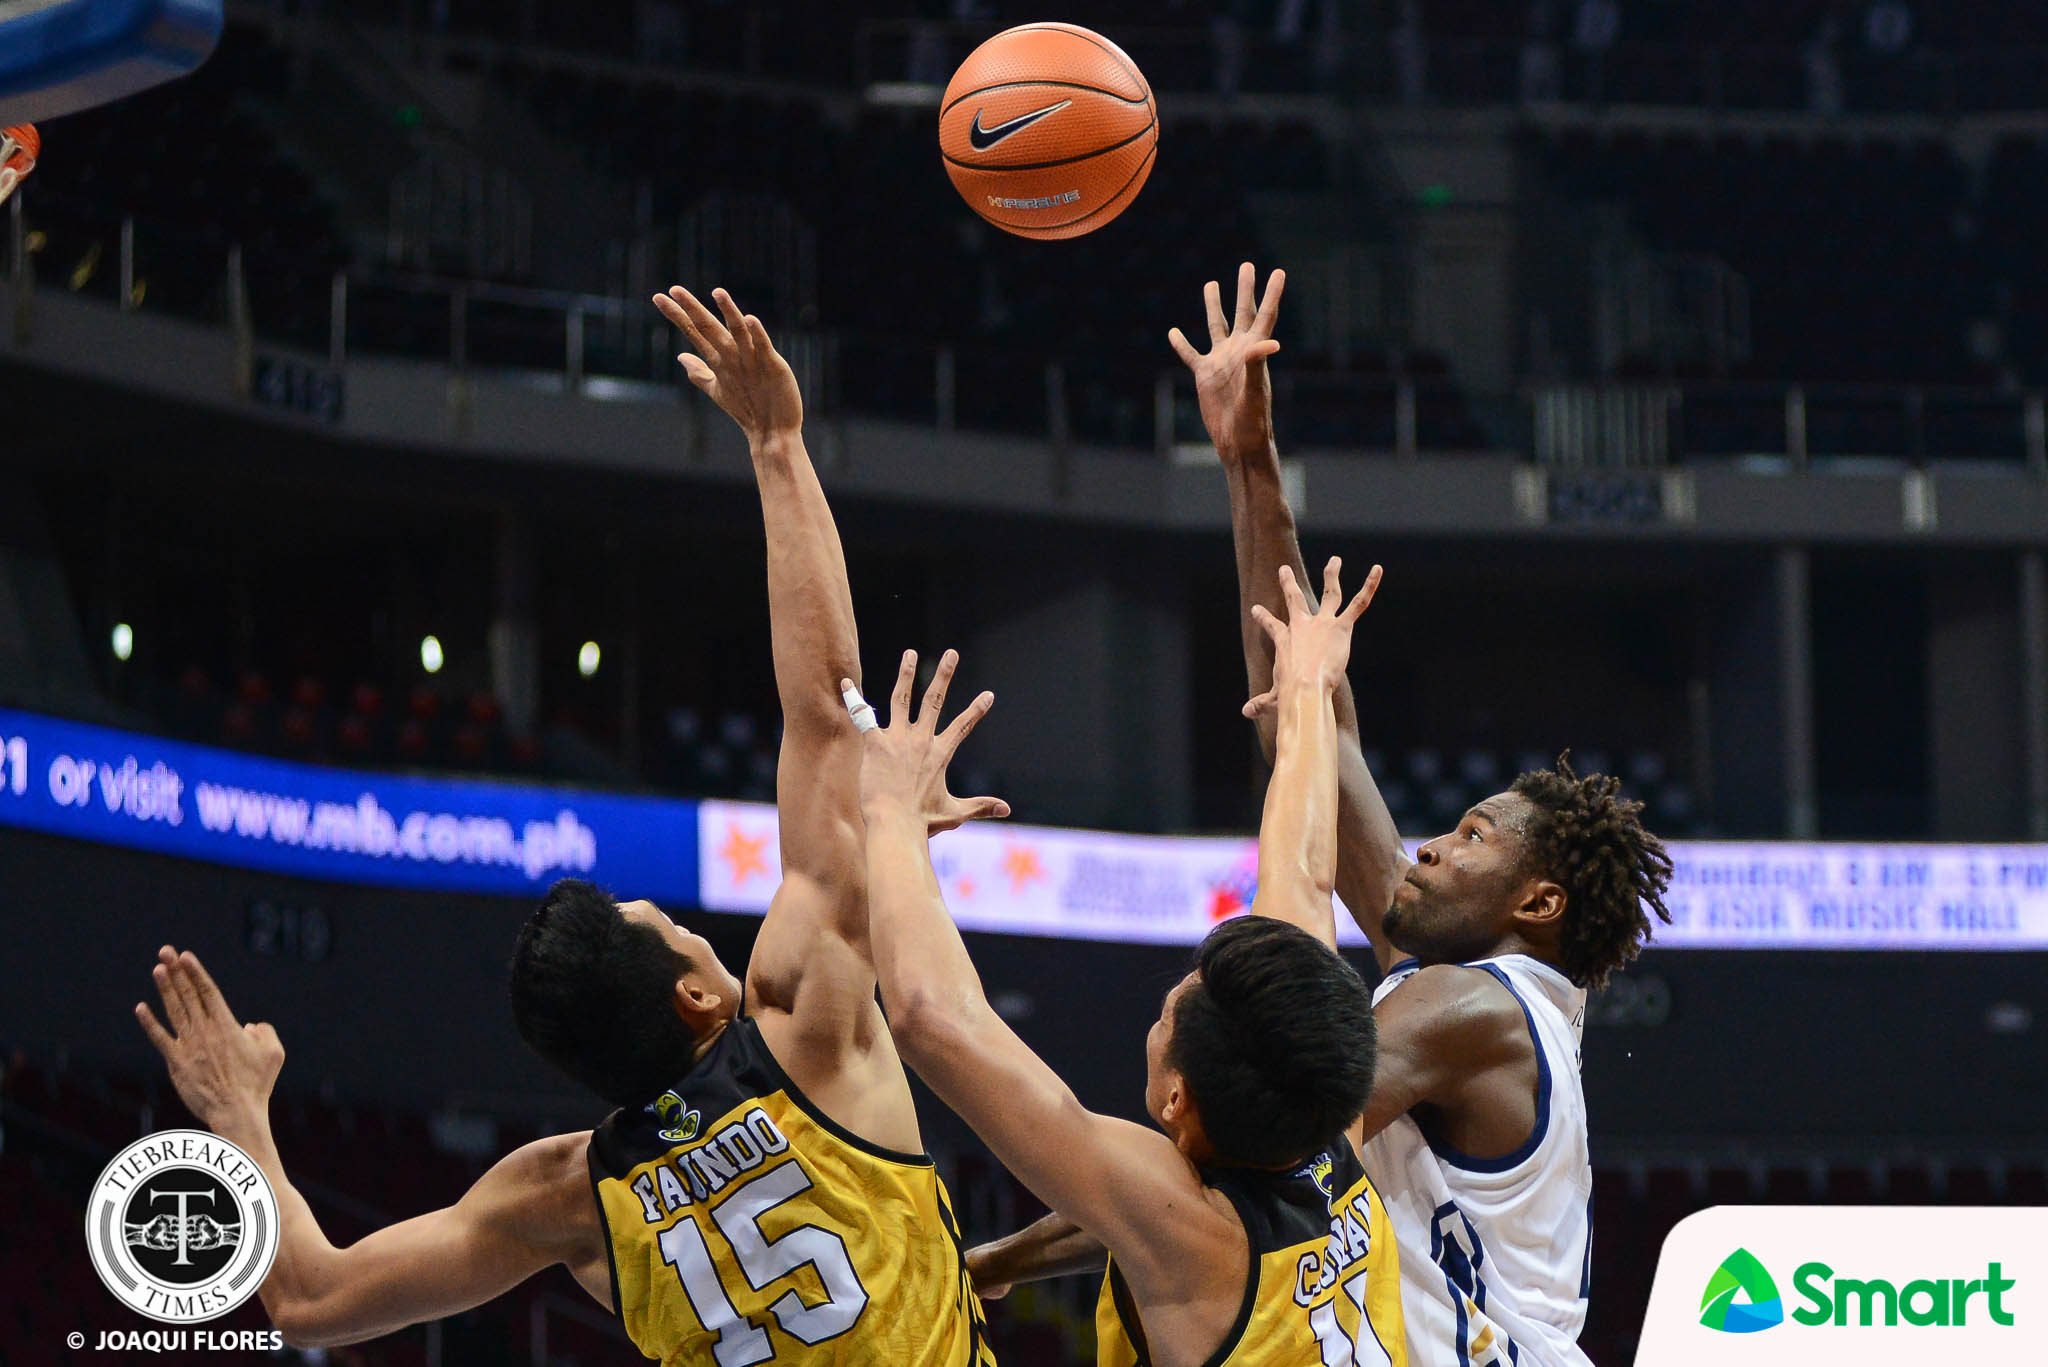 Tiebreaker Times NU outlasts UST in hard-fought game to bounce back Basketball News NU UAAP UST  UST Men's Basketball UAAP Season 80 Men's Basketball UAAP Season 80 Reggie Basibas NU Men's Basketball Jordan Sta. Ana JJay Alejandro Jamike Jarin Issa Gaye Dave Yu Chino Mosqueda Boy Sablan